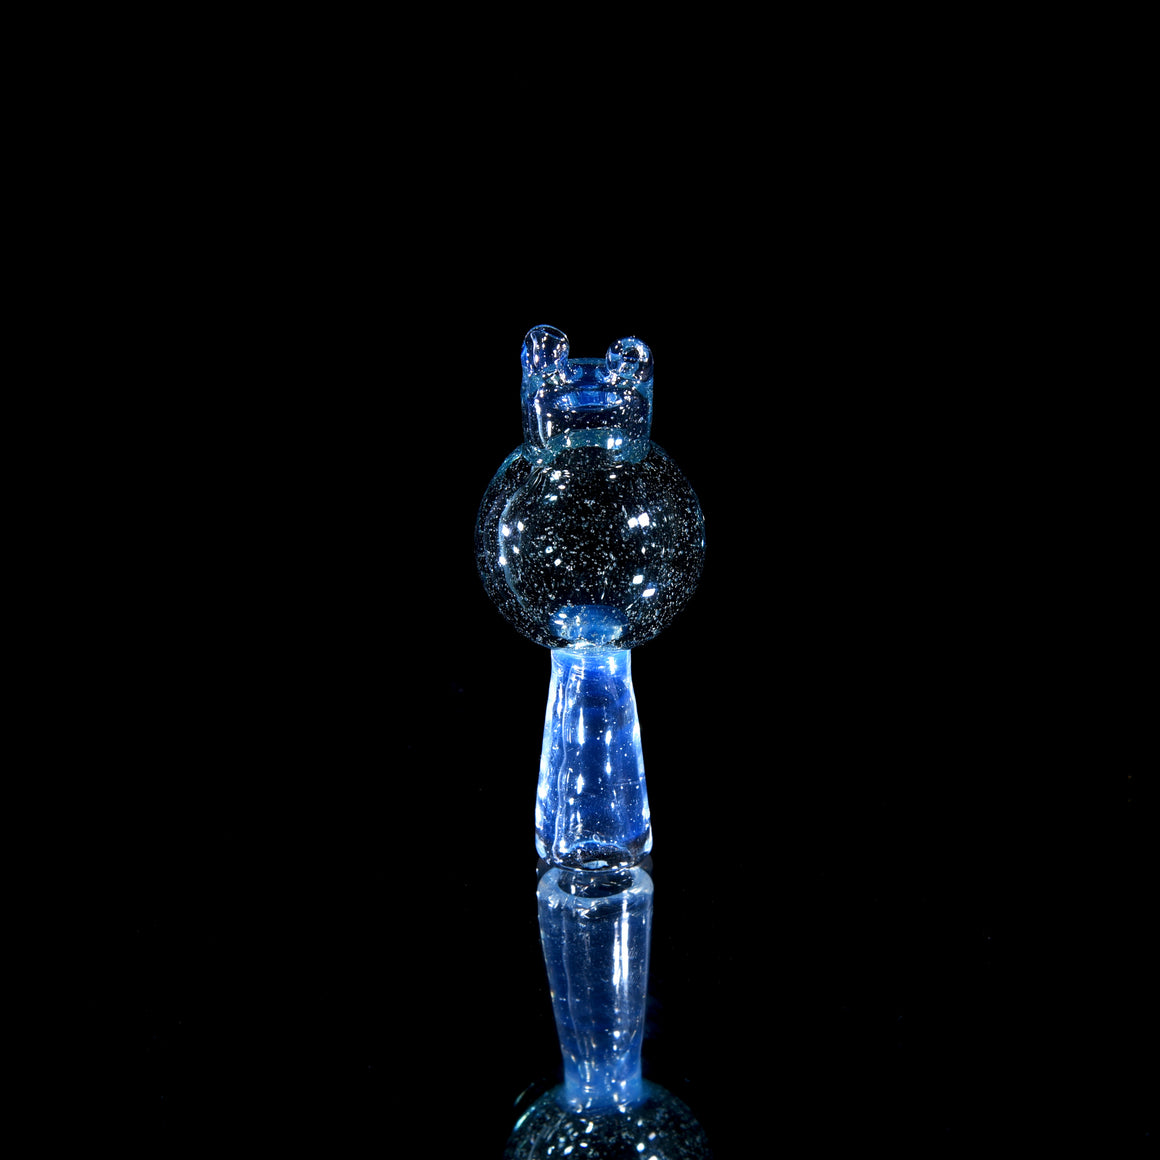 Double-uptake Floating Recycler - CFL Siriusly/Moonstone - 10mm Female